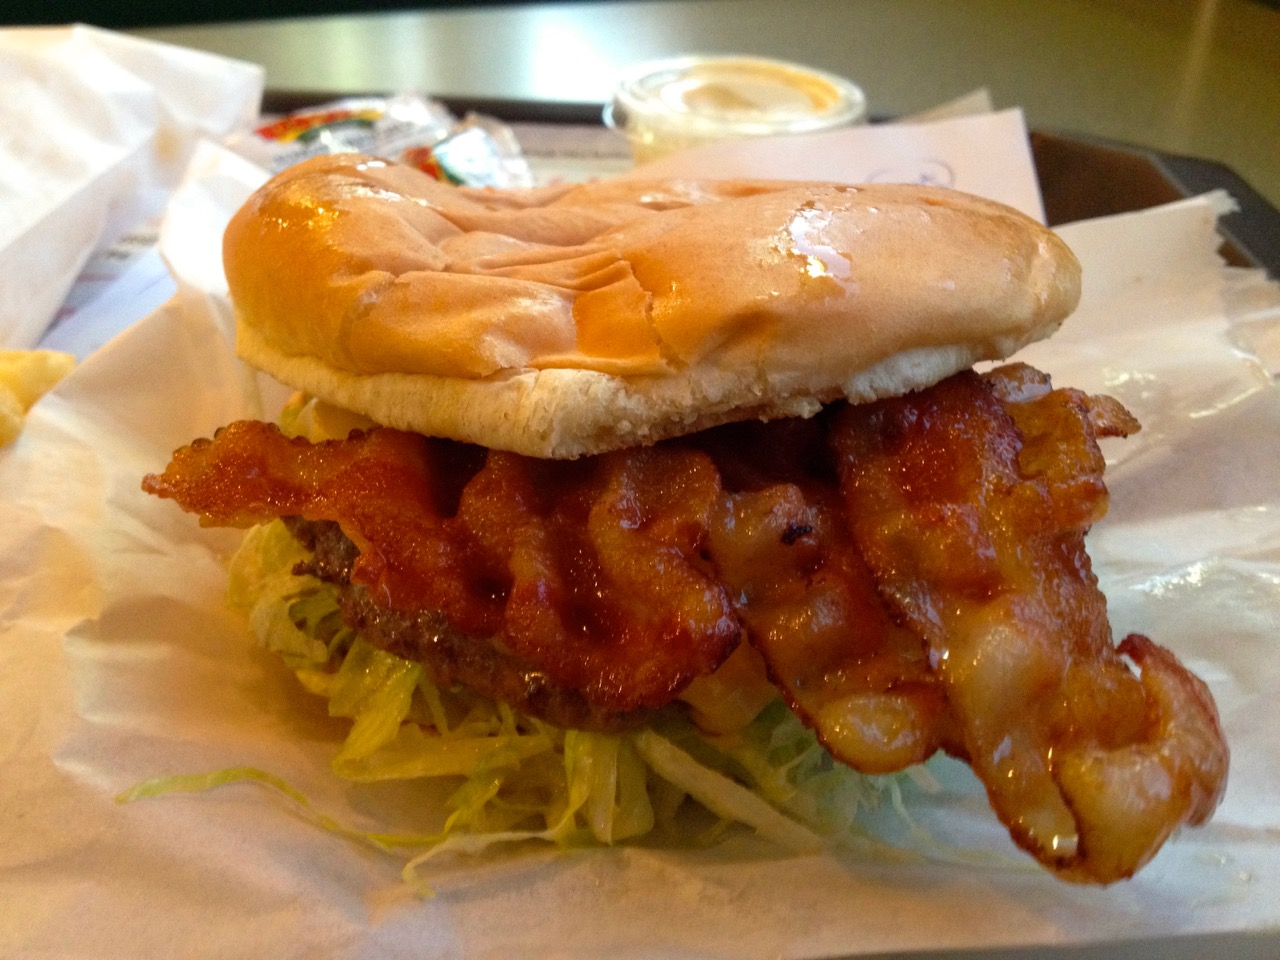 A Simple Bacon Cheeseburger at Zips in Kennewick - June 30 2019